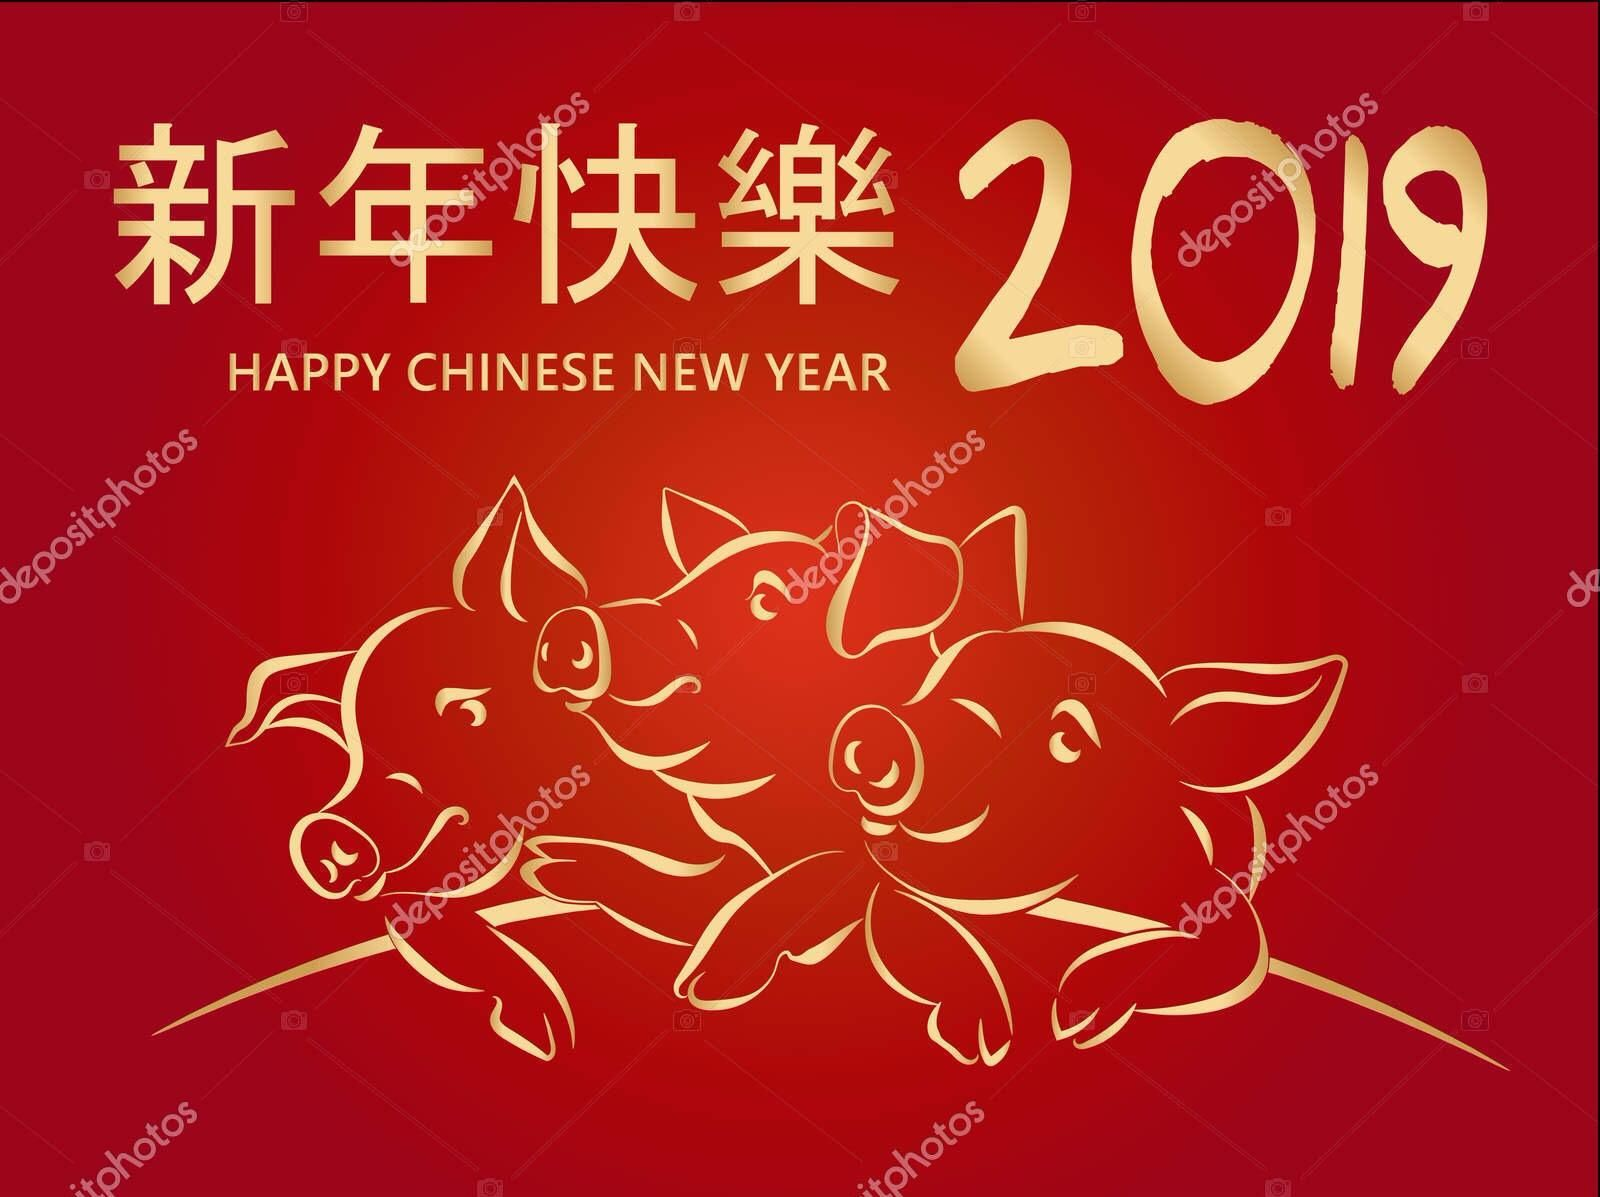 Pin by WaiHung Yee on Piggy 2019 Happy chinese new year